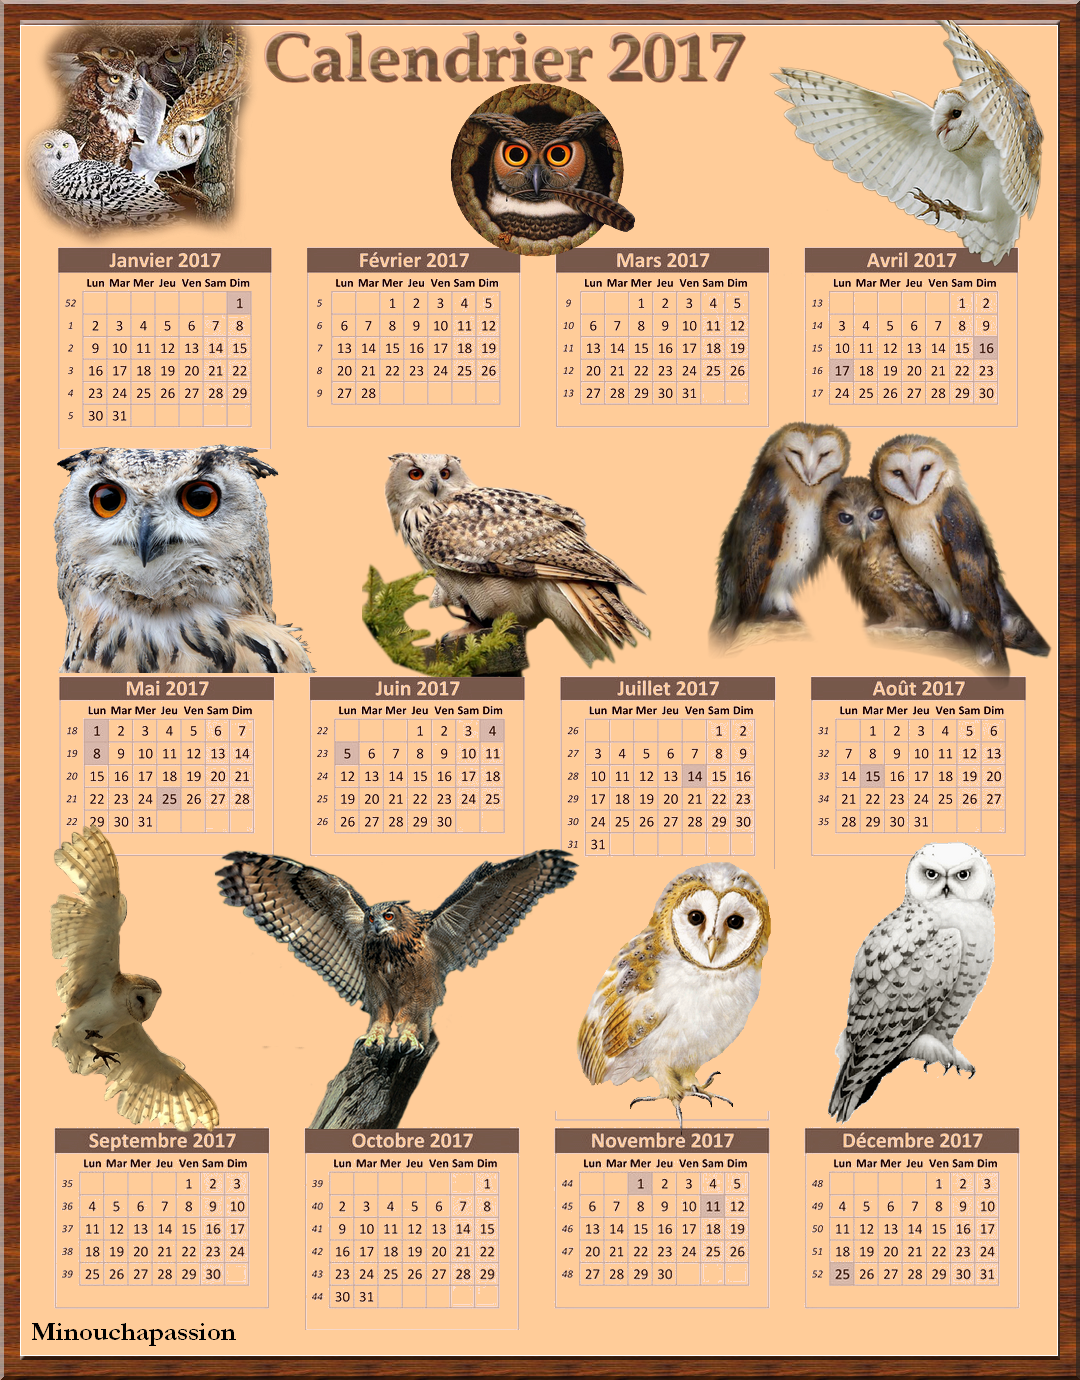 Calendrier 2017 Chouettes